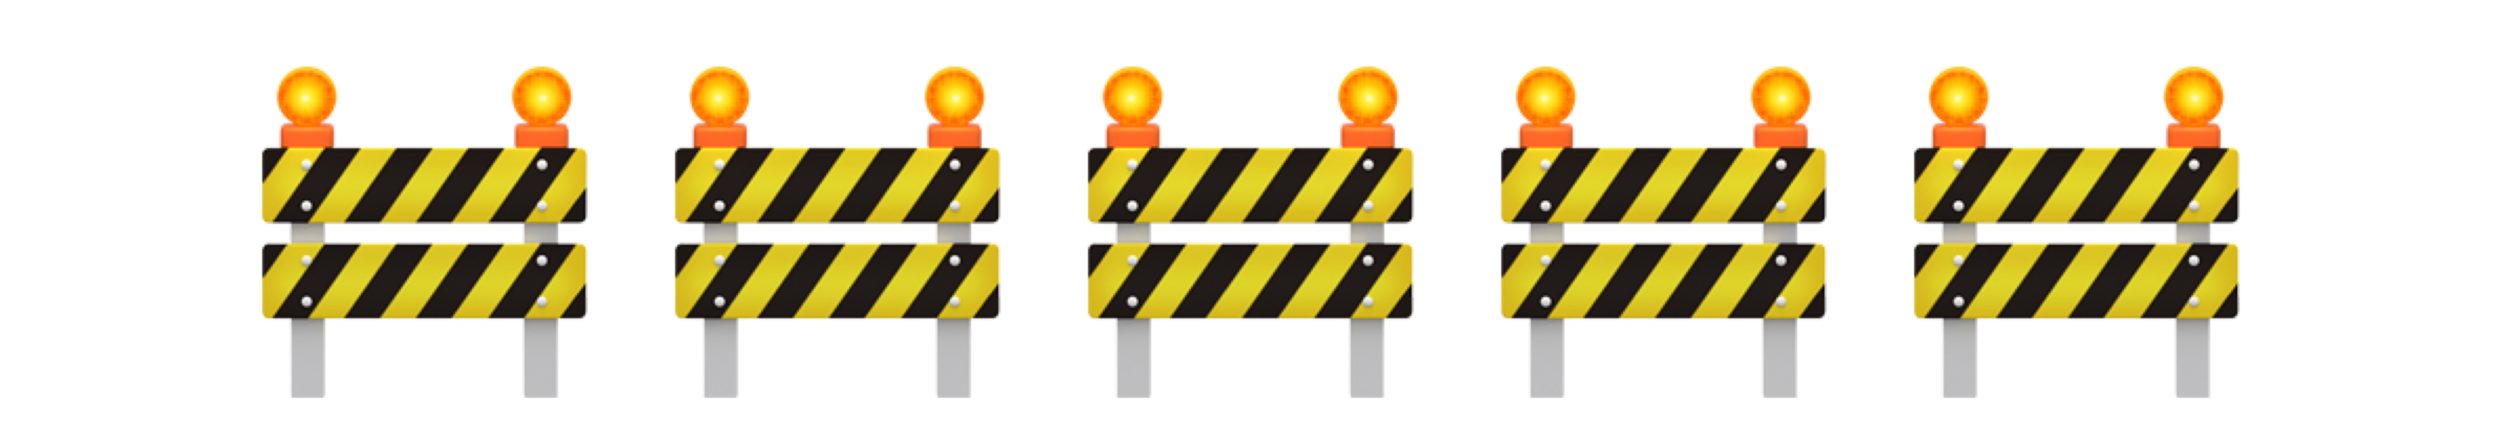 ConstructionBarriers.png